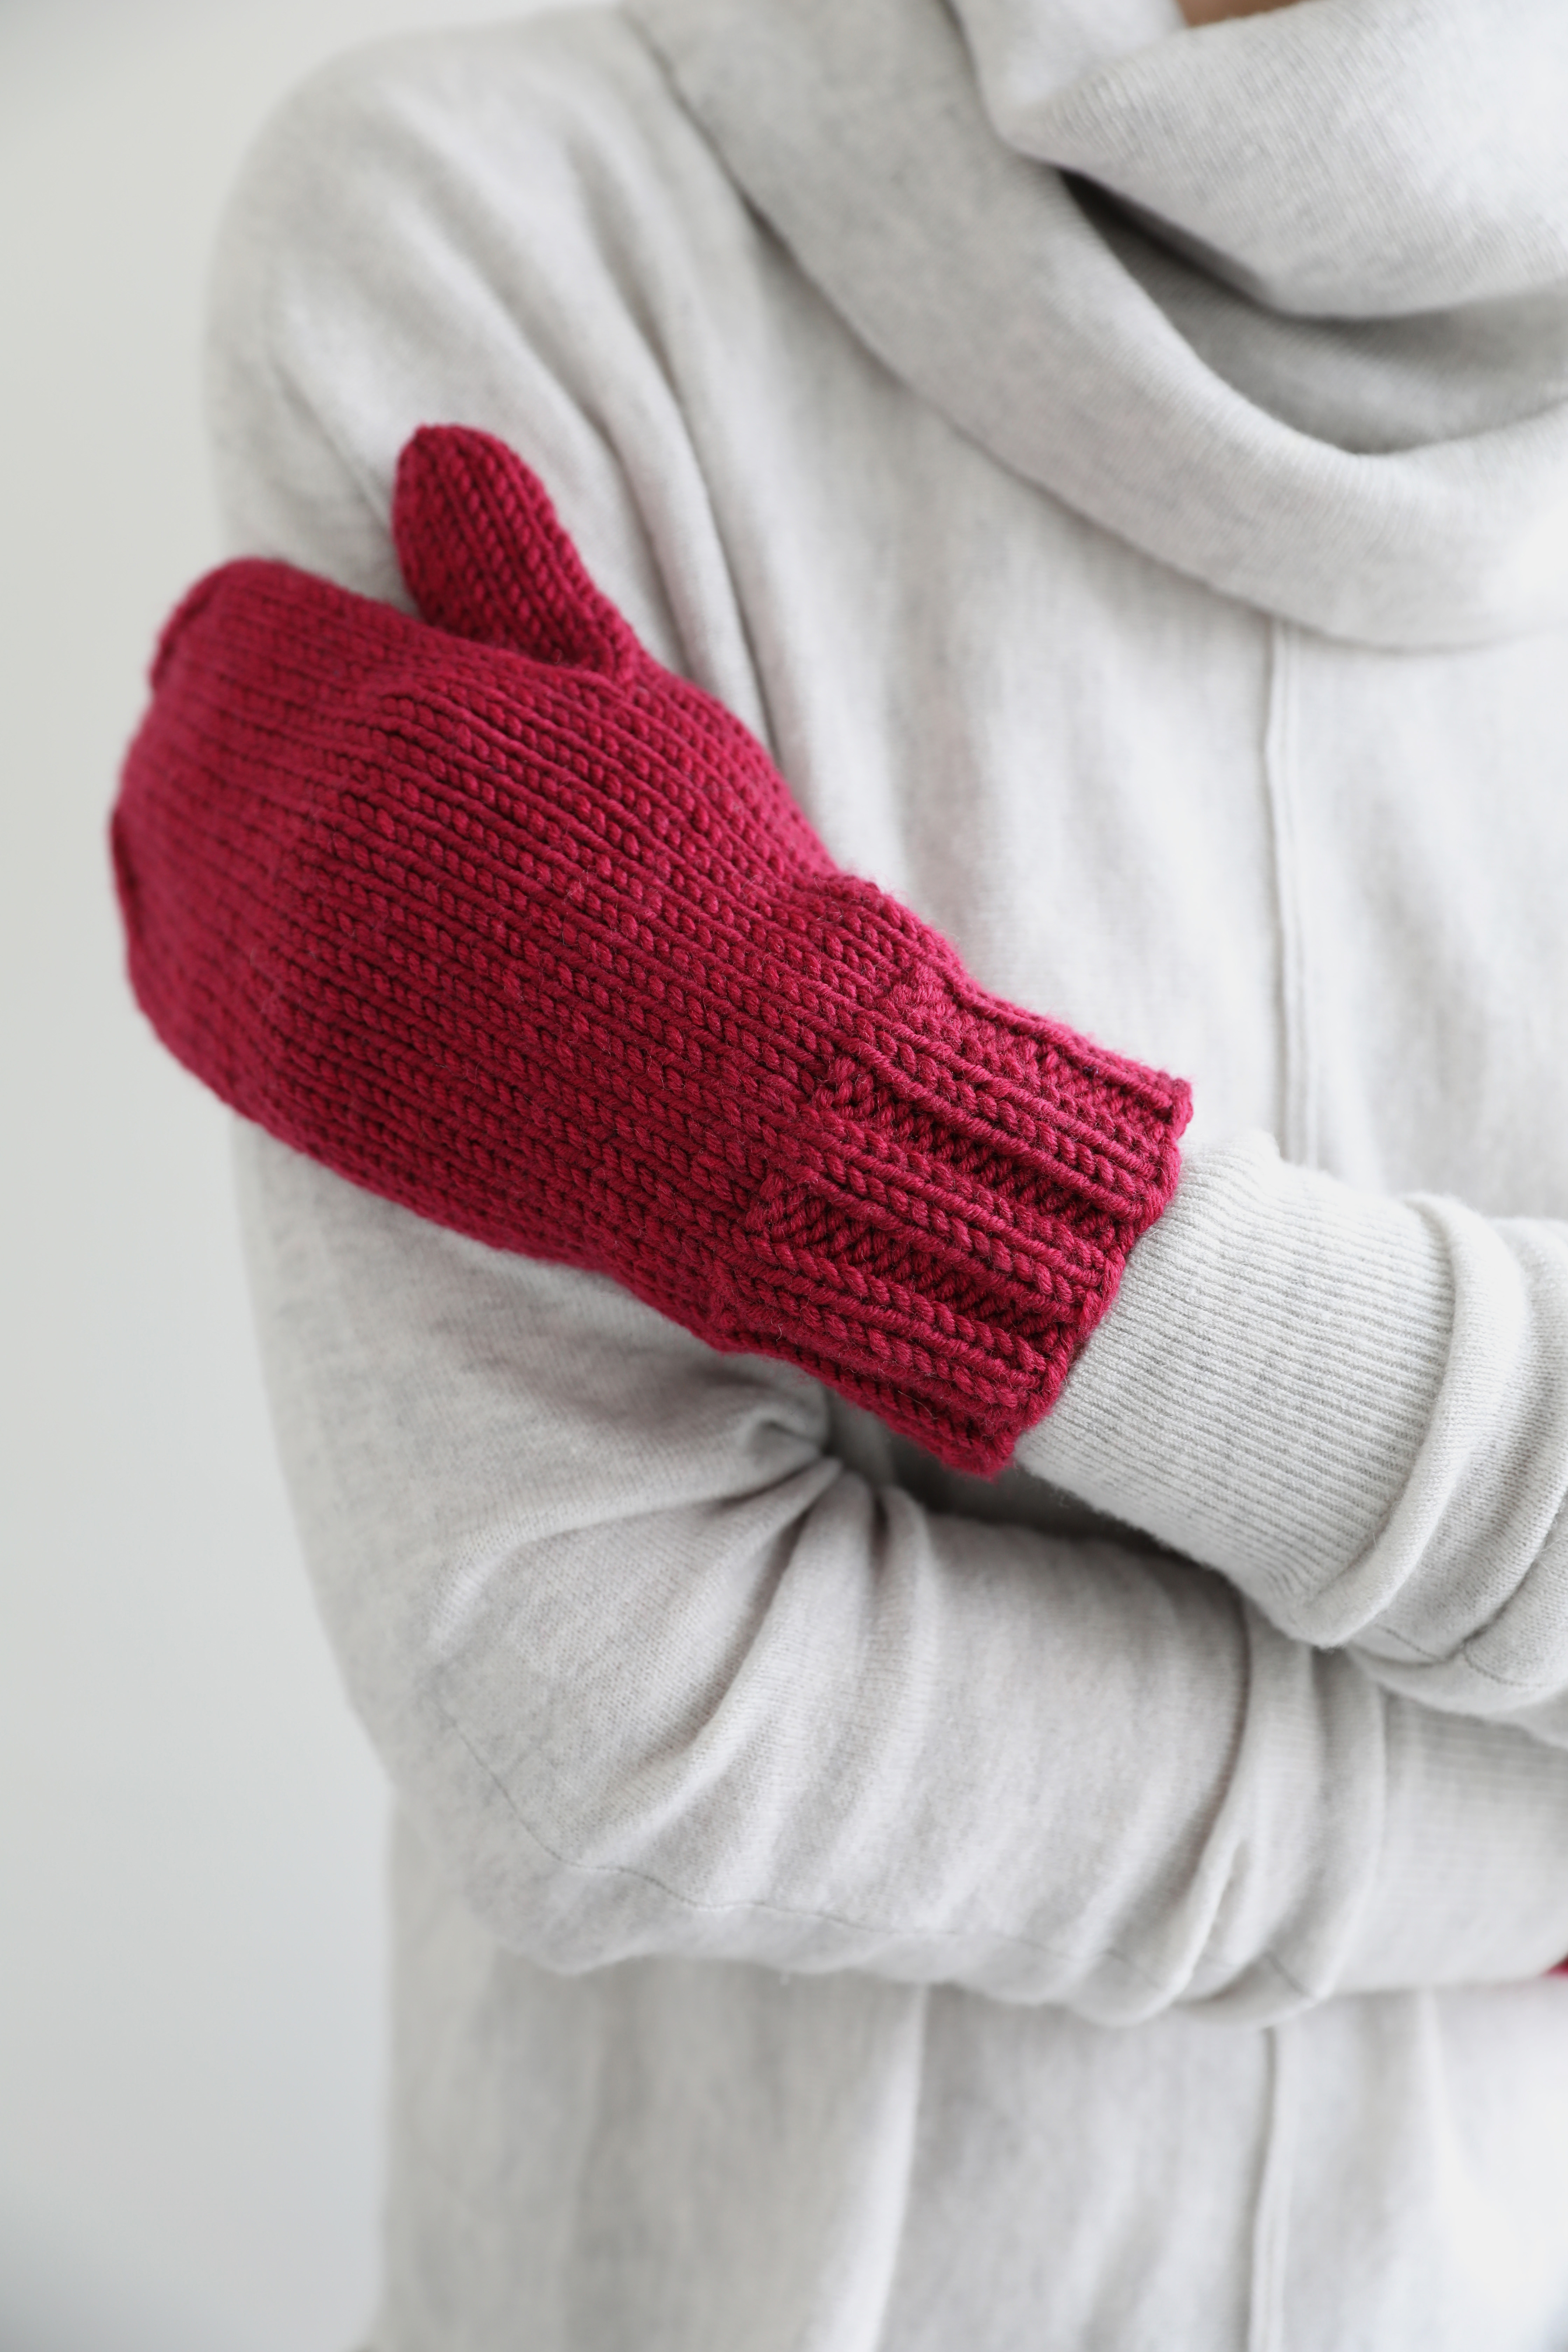 New free pattern from Espace Tricot: Big Merino Mitts - Espace Tricot Blog